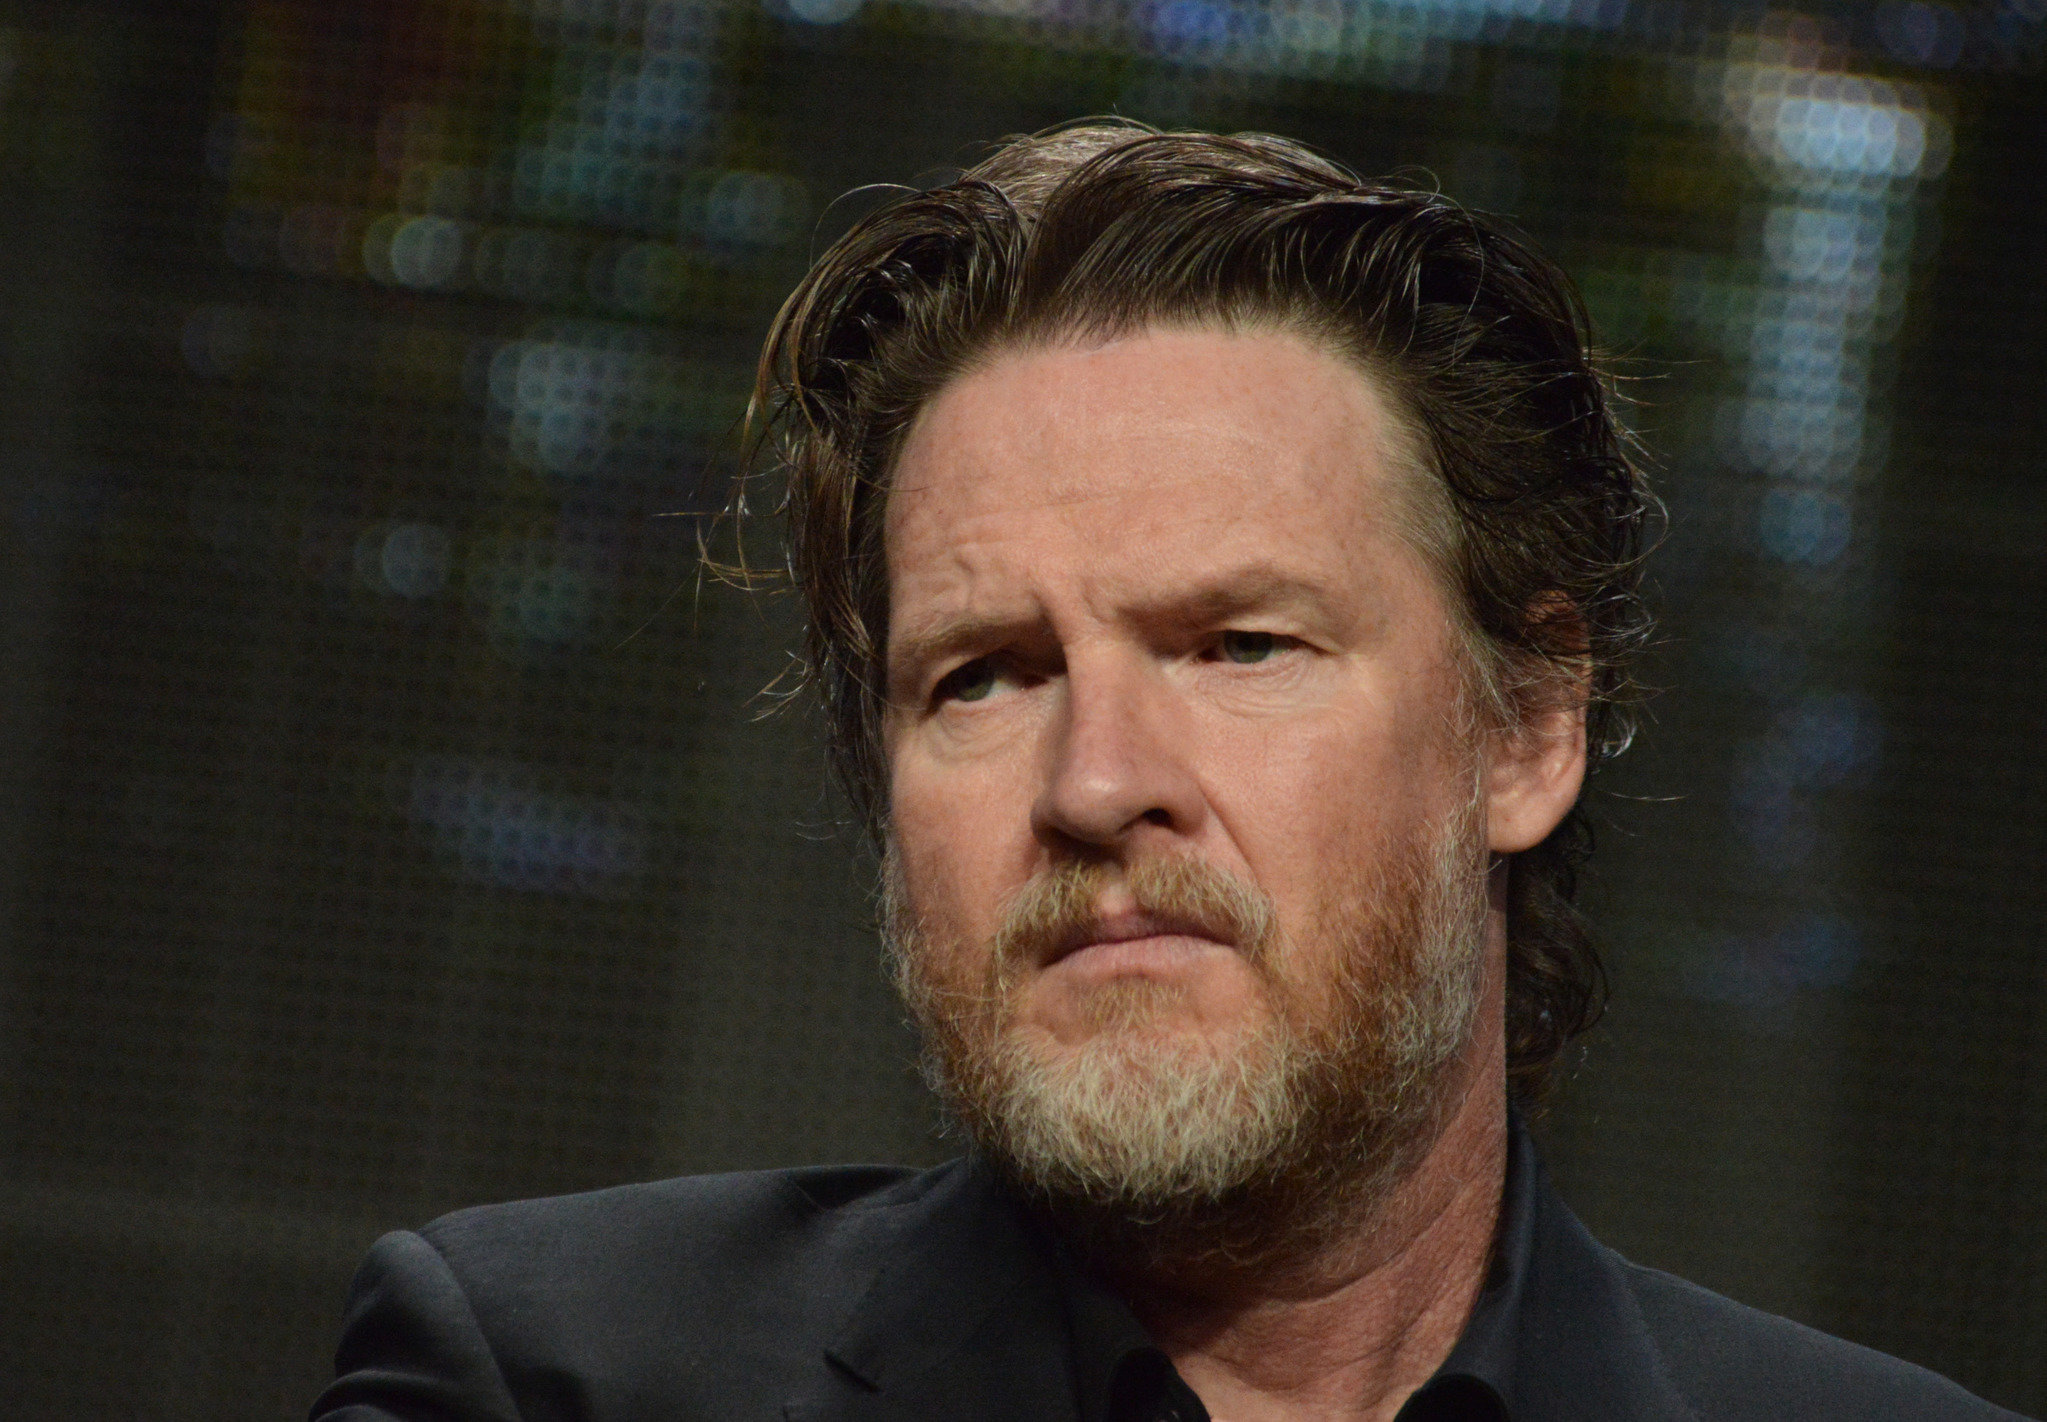 Donal Logue nudes (31 photos), Sexy, Is a cute, Boobs, butt 2019